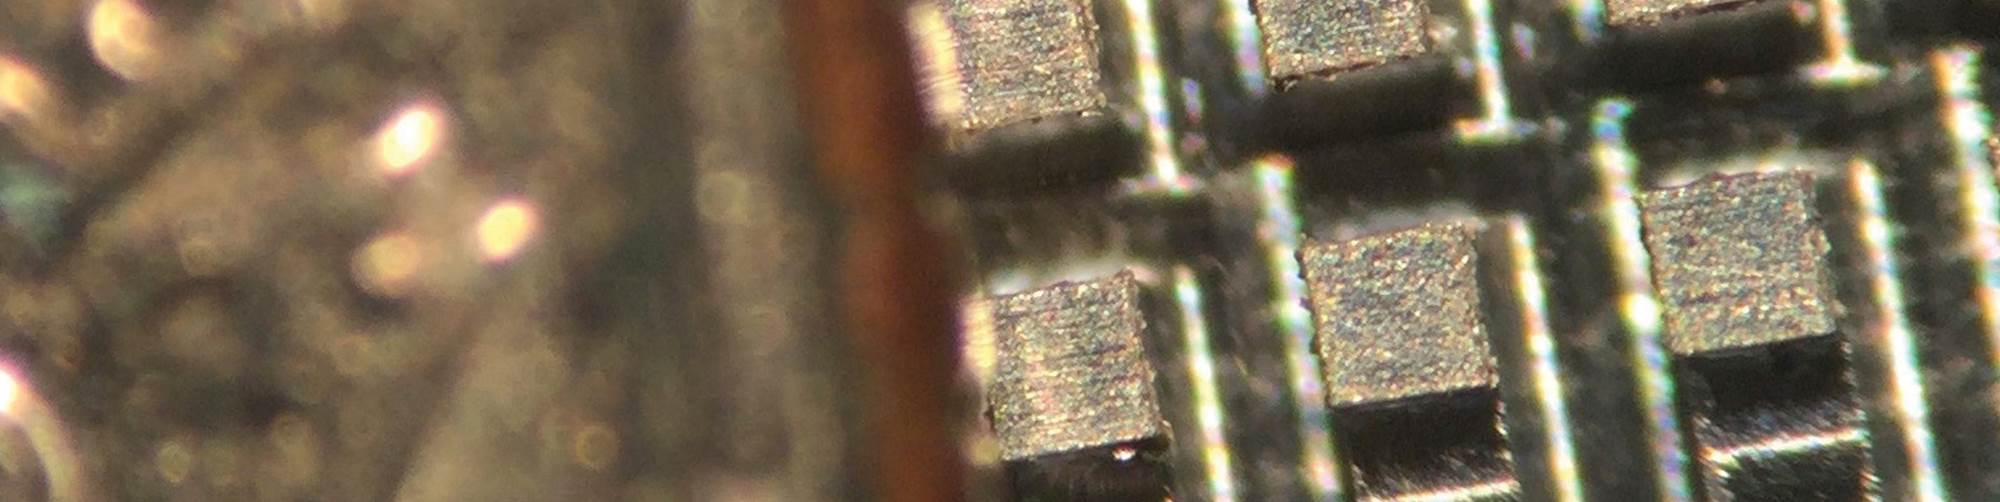 micromachining banner photo